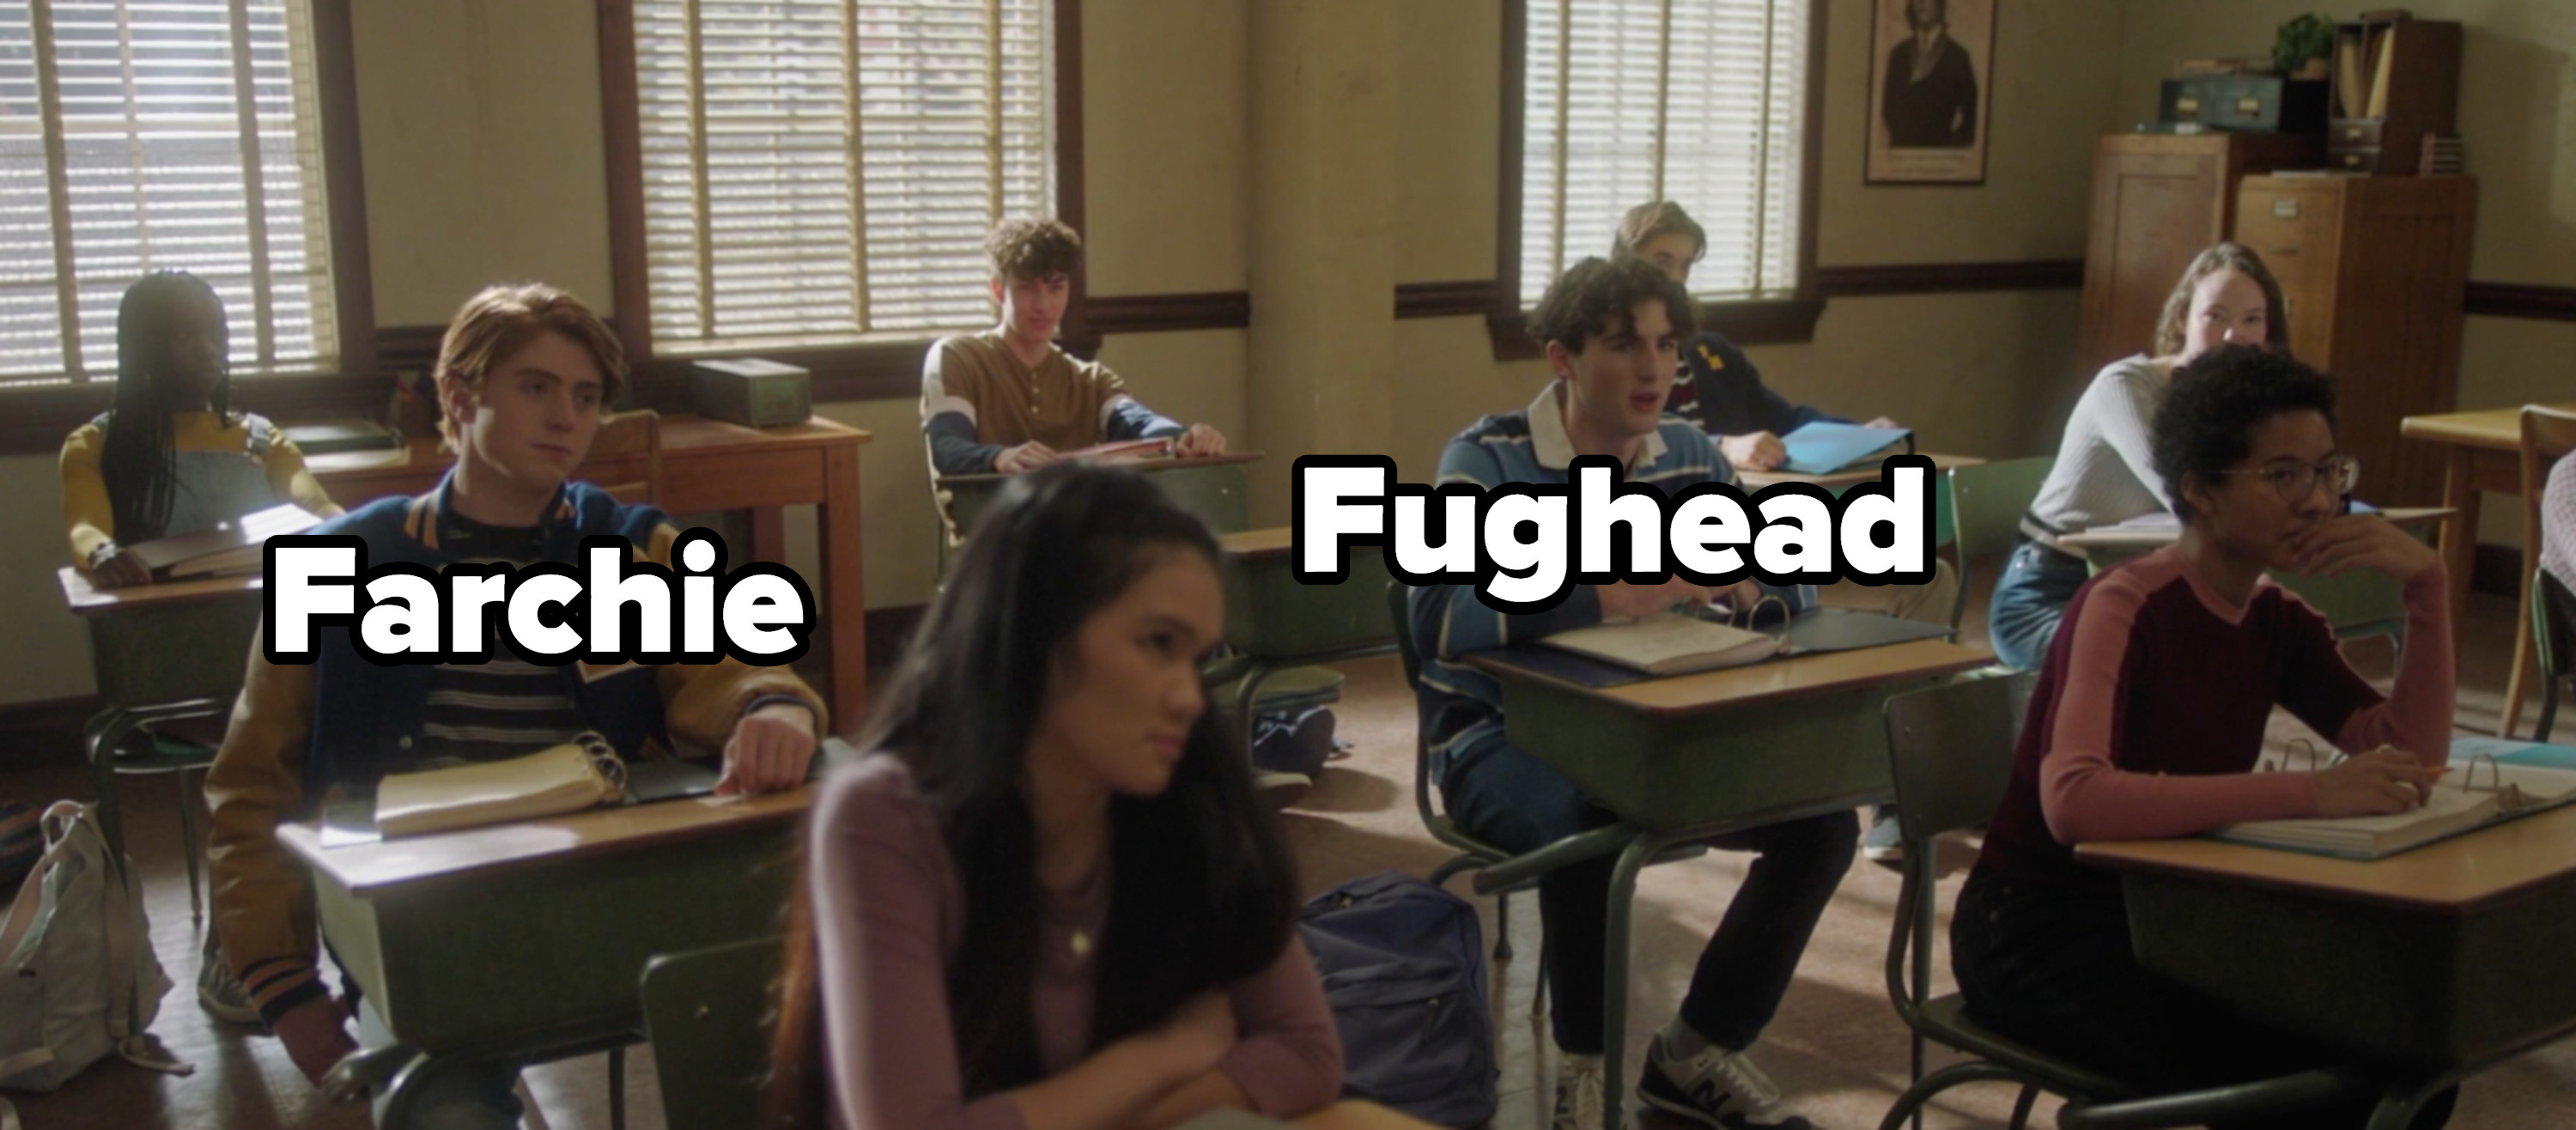 Farchie and Fughead sitting at their desks in class